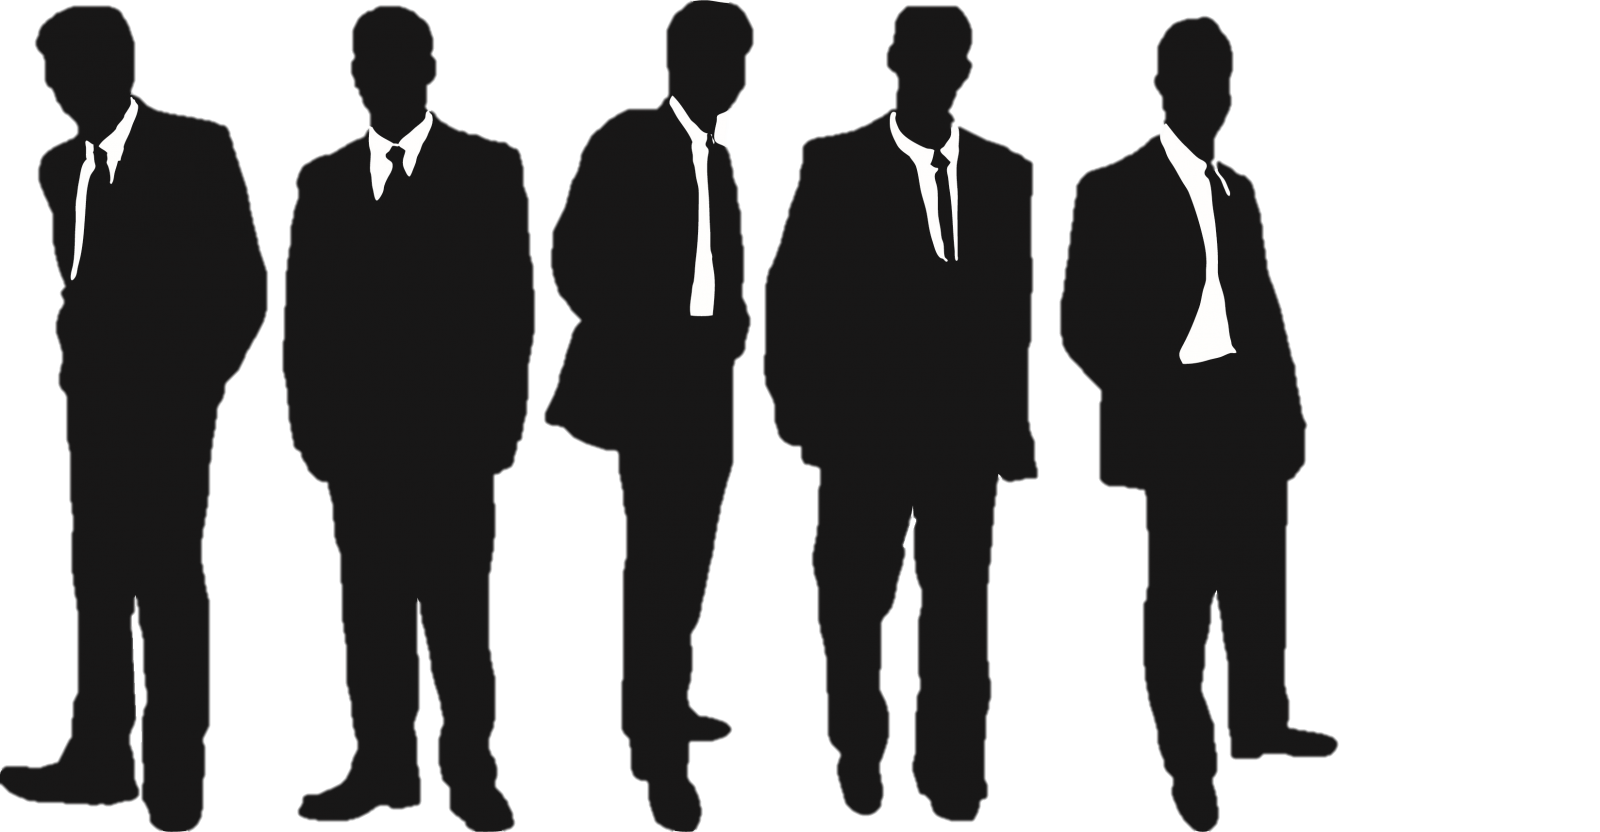 Manager clipart business person. Businessperson royalty free silhouette